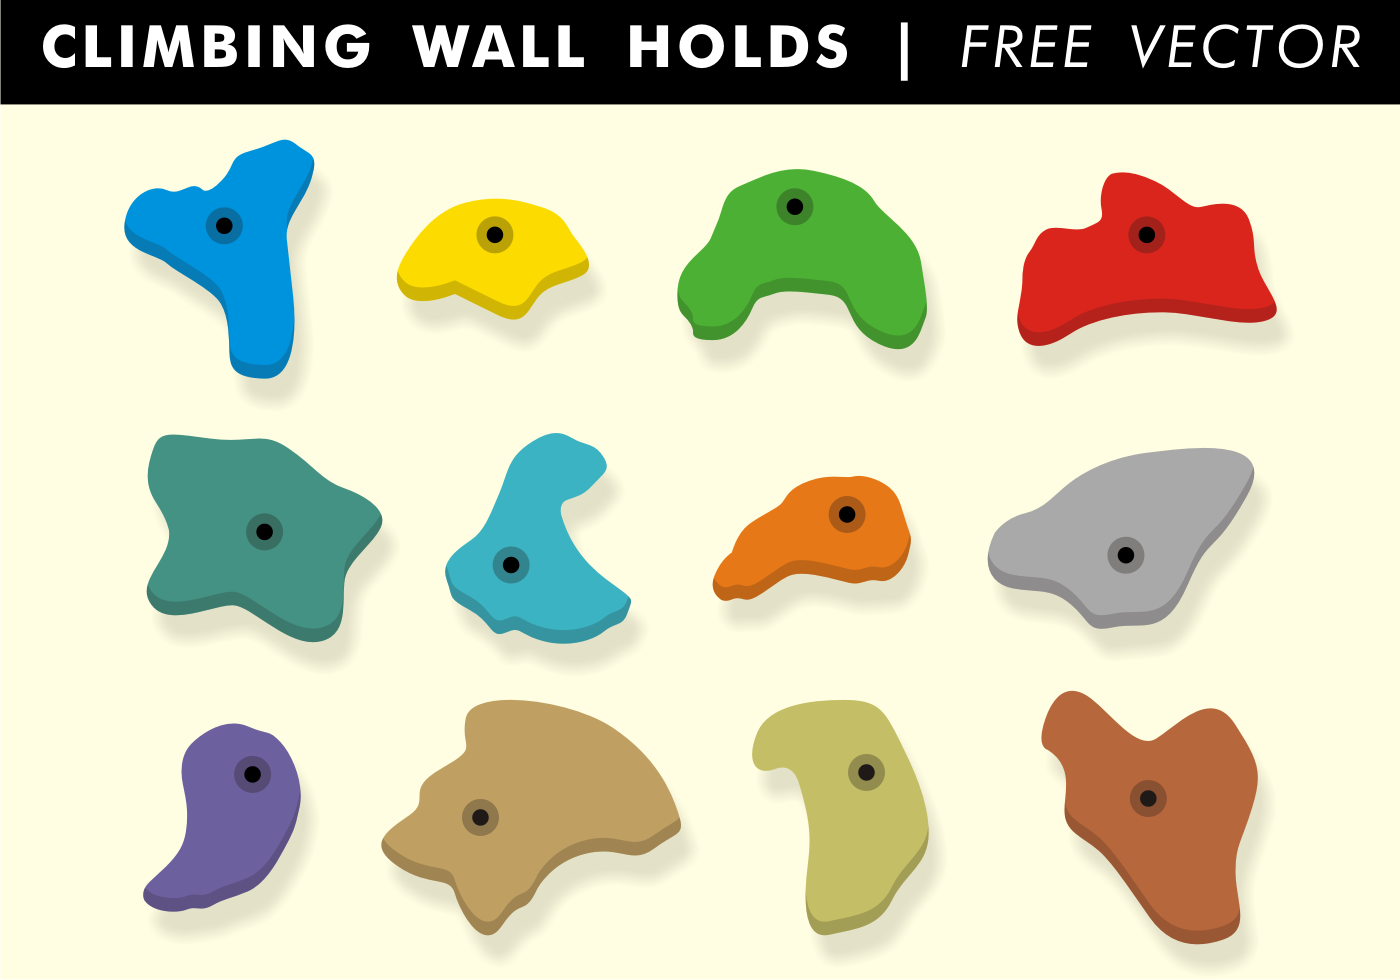 Climbing wall holds free vector download free vector art stock